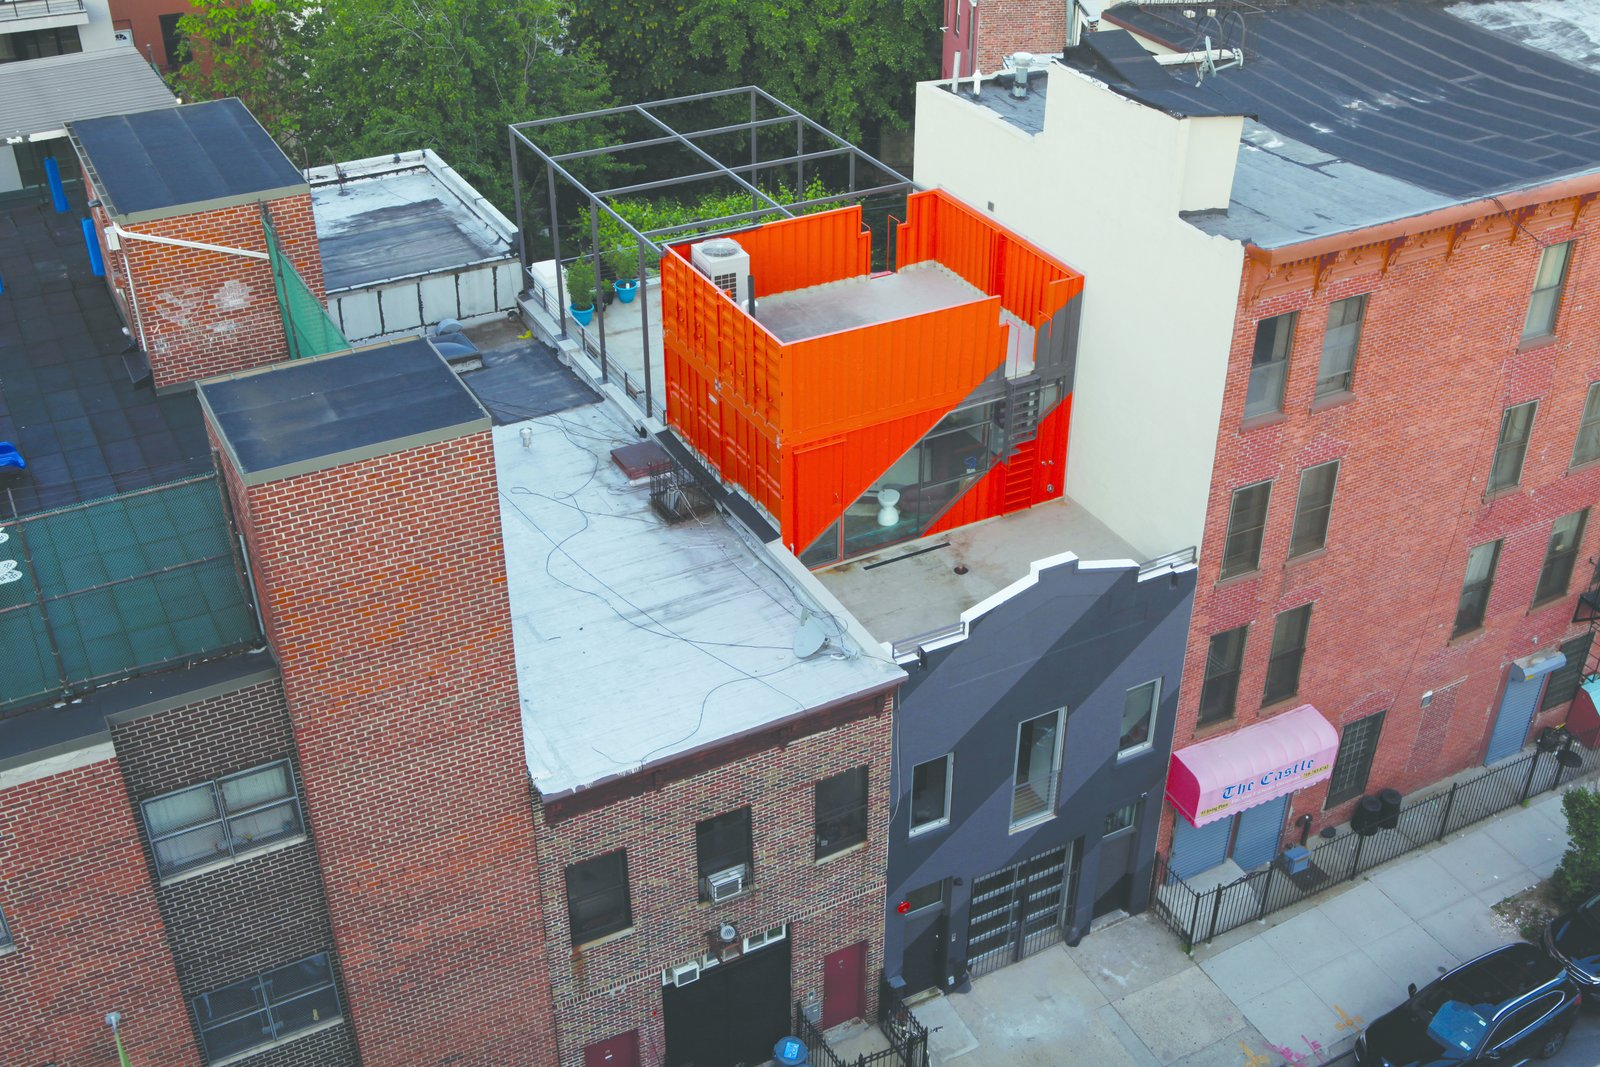 Photo 1 of 12 in A Brooklyn Carriage House Is Revamped With a Penthouse Made From Shipping Containers